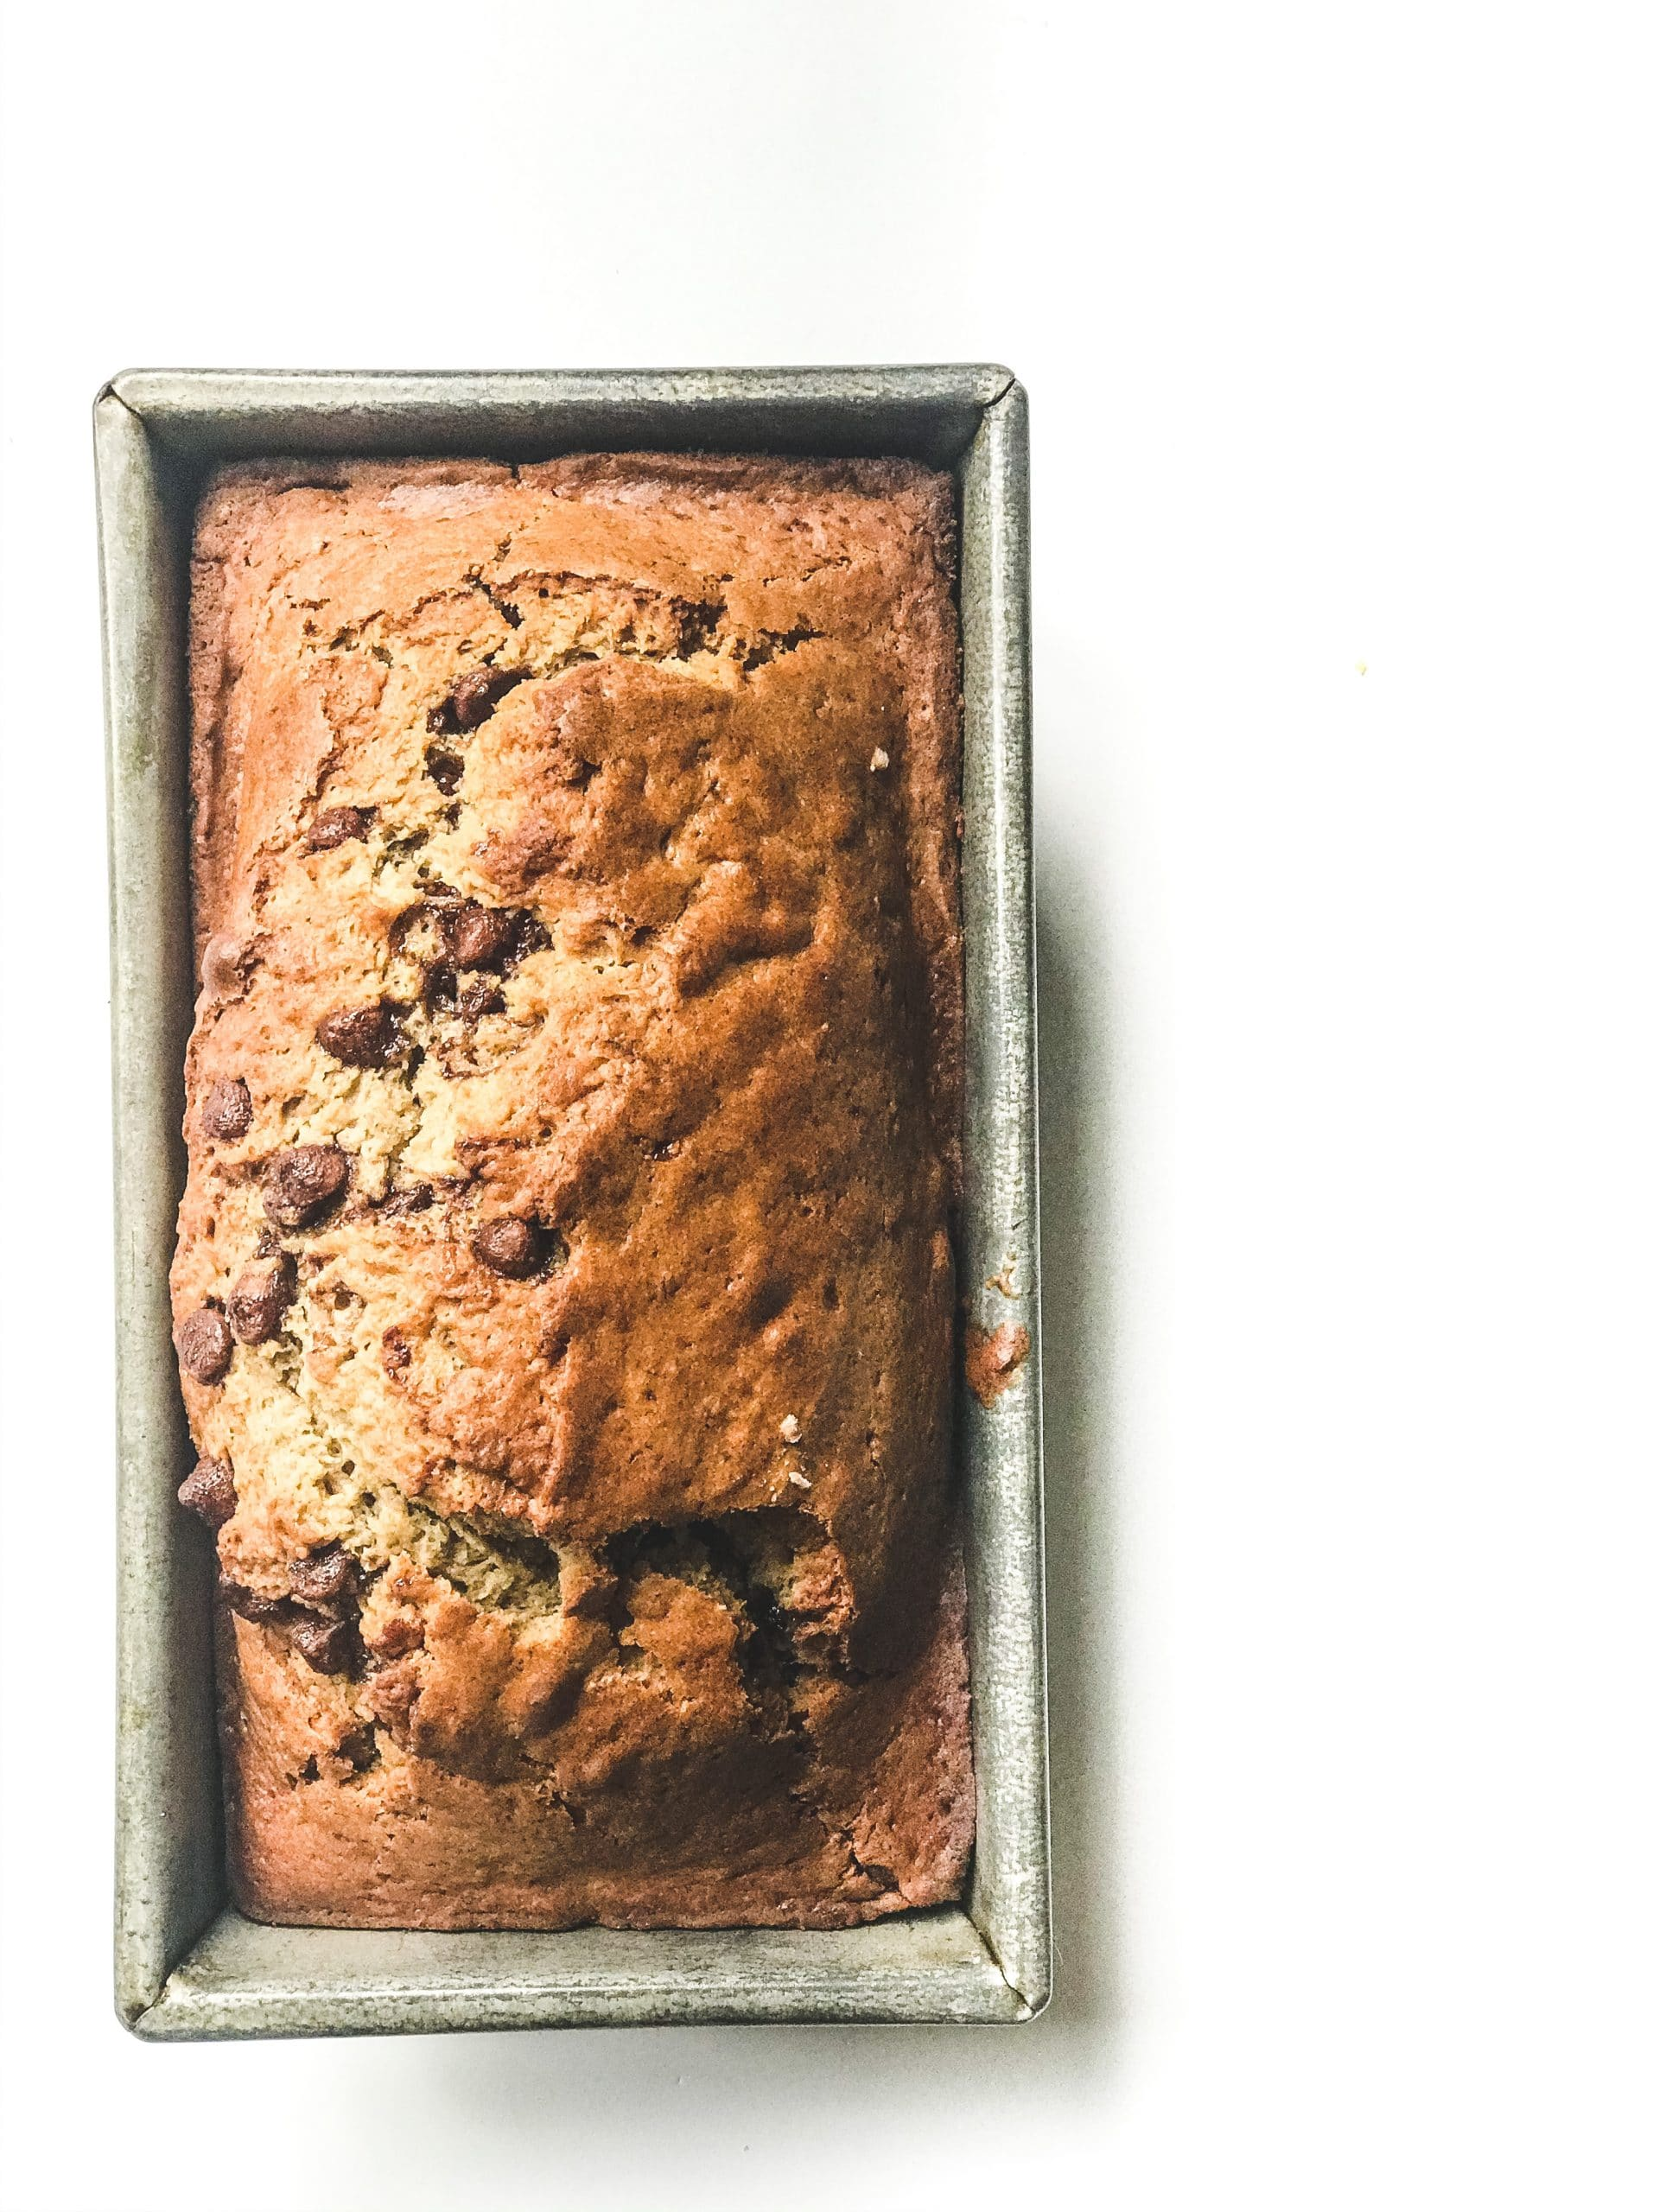 sourdough discard banana bread with chocolate chips